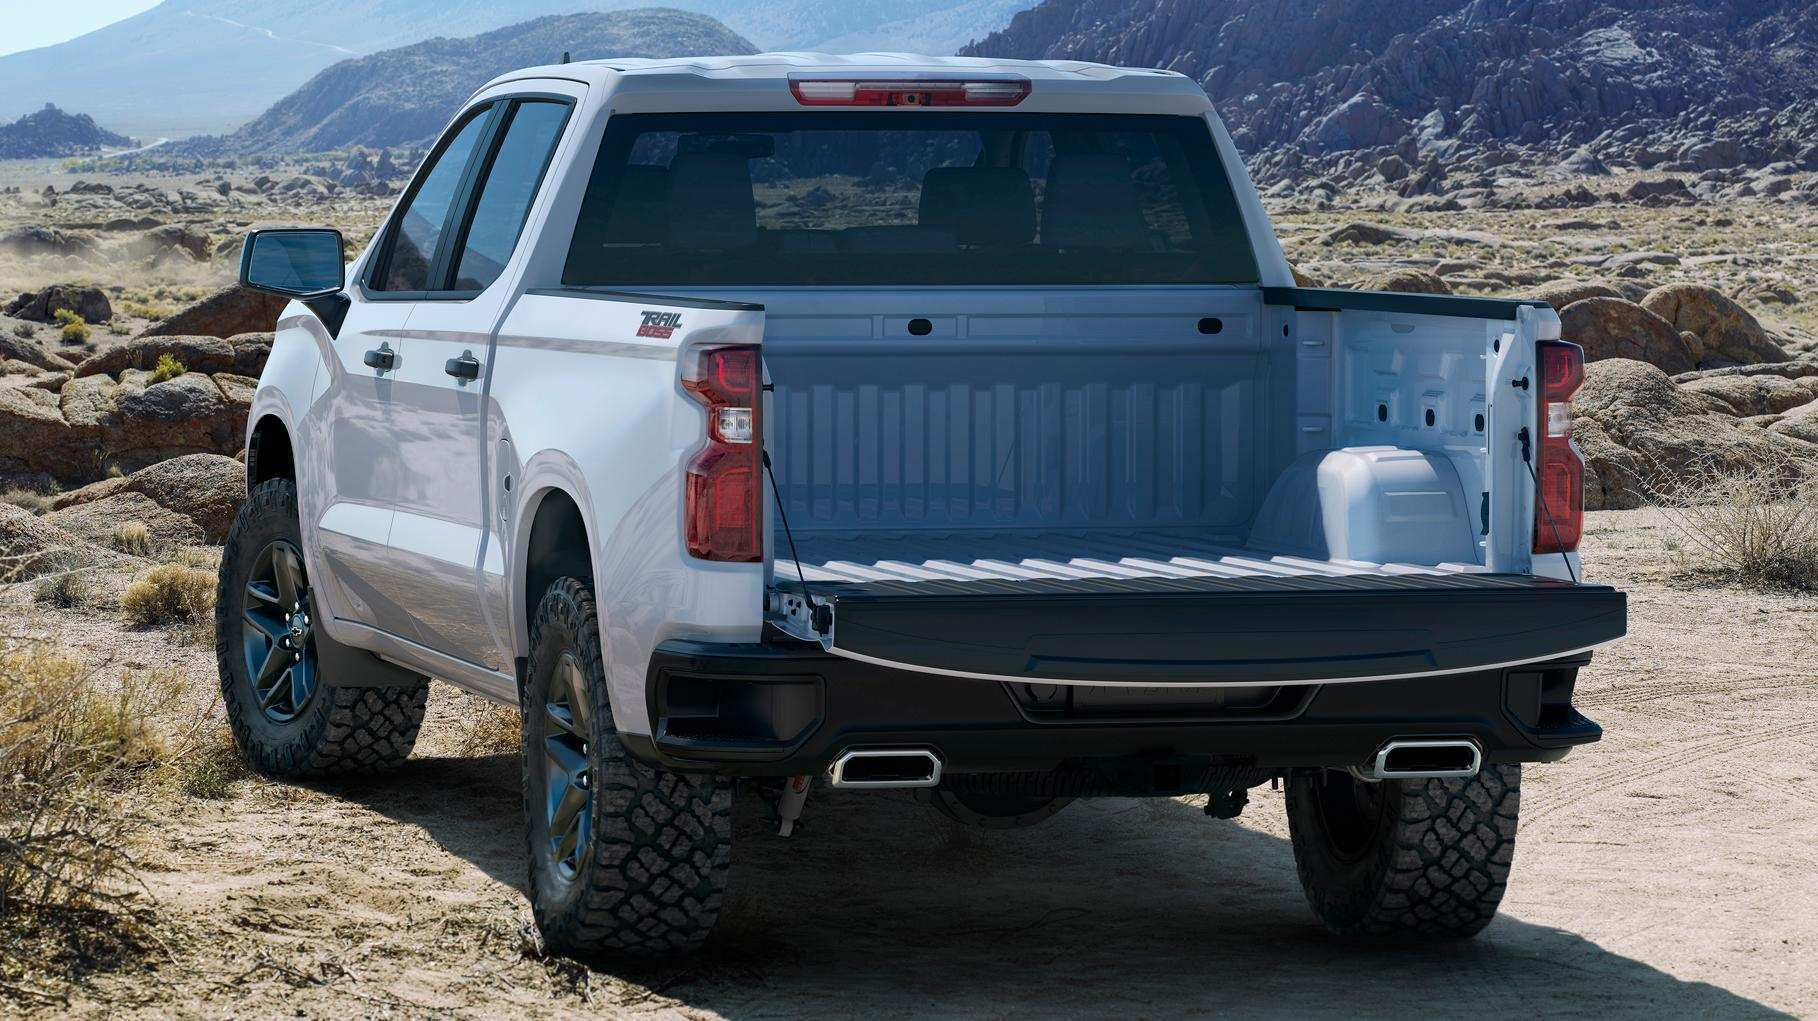 47 New 2019 Chevrolet 1500 For Sale Research New for 2019 Chevrolet 1500 For Sale